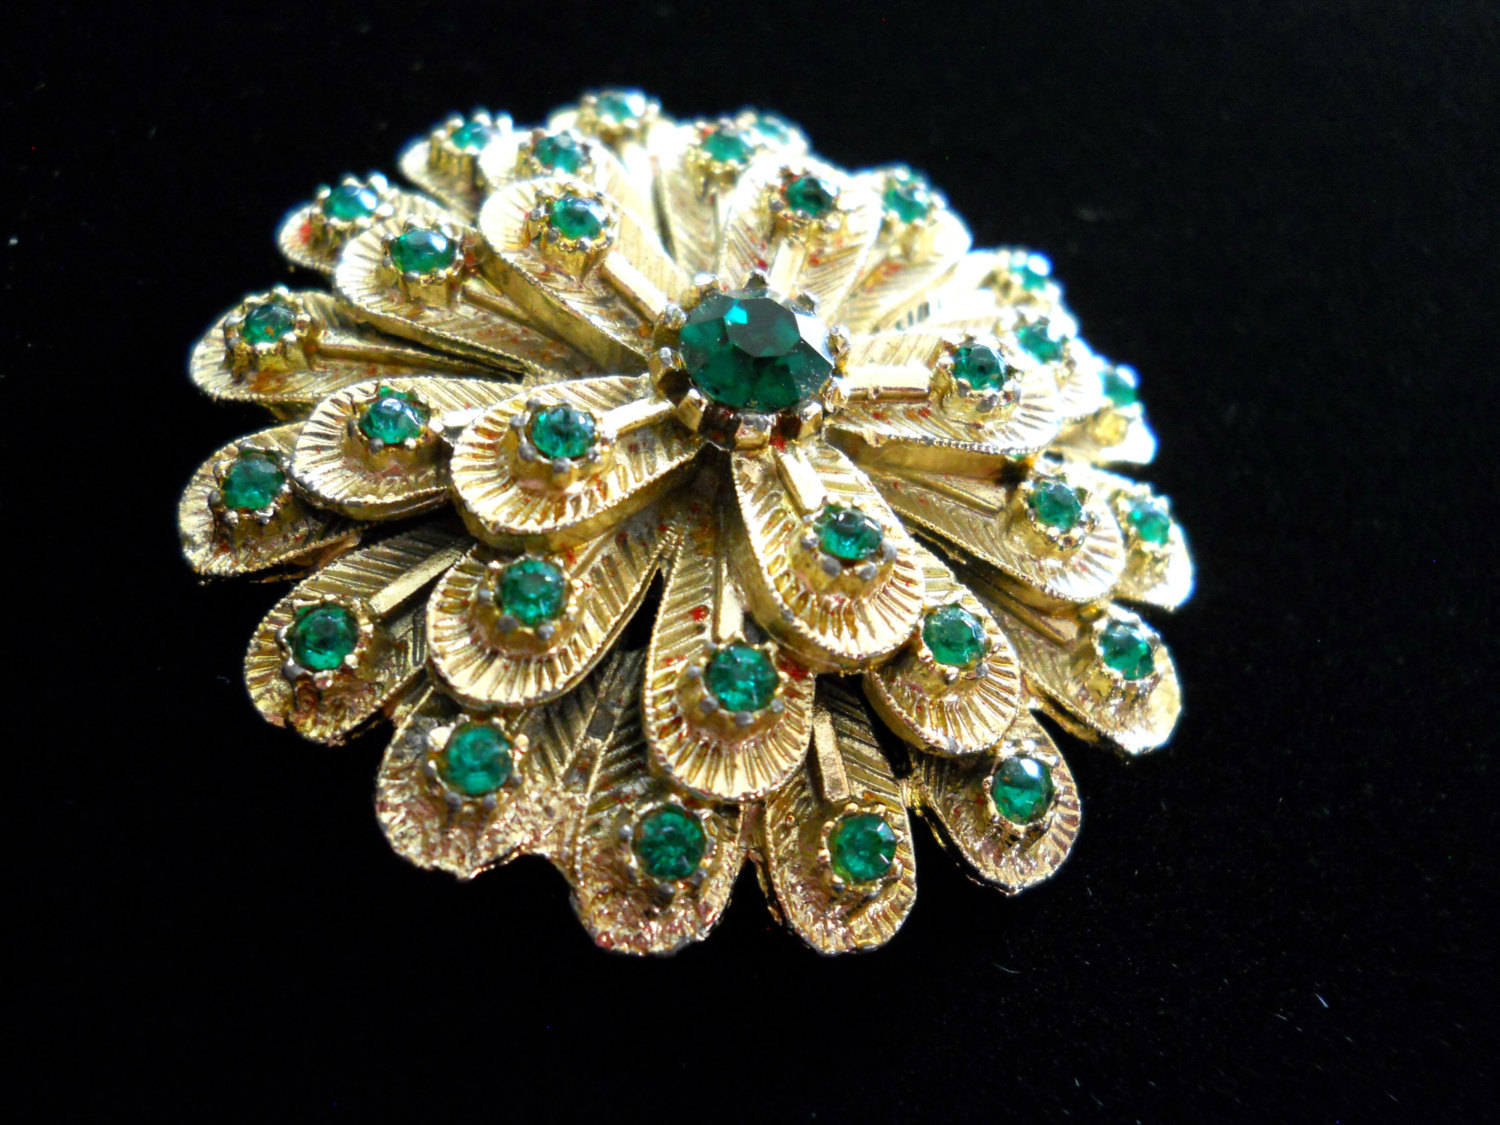 Rhinestone Flower Brooch Pin Layered Textured Gold Tone Metal Green Rhinestone V